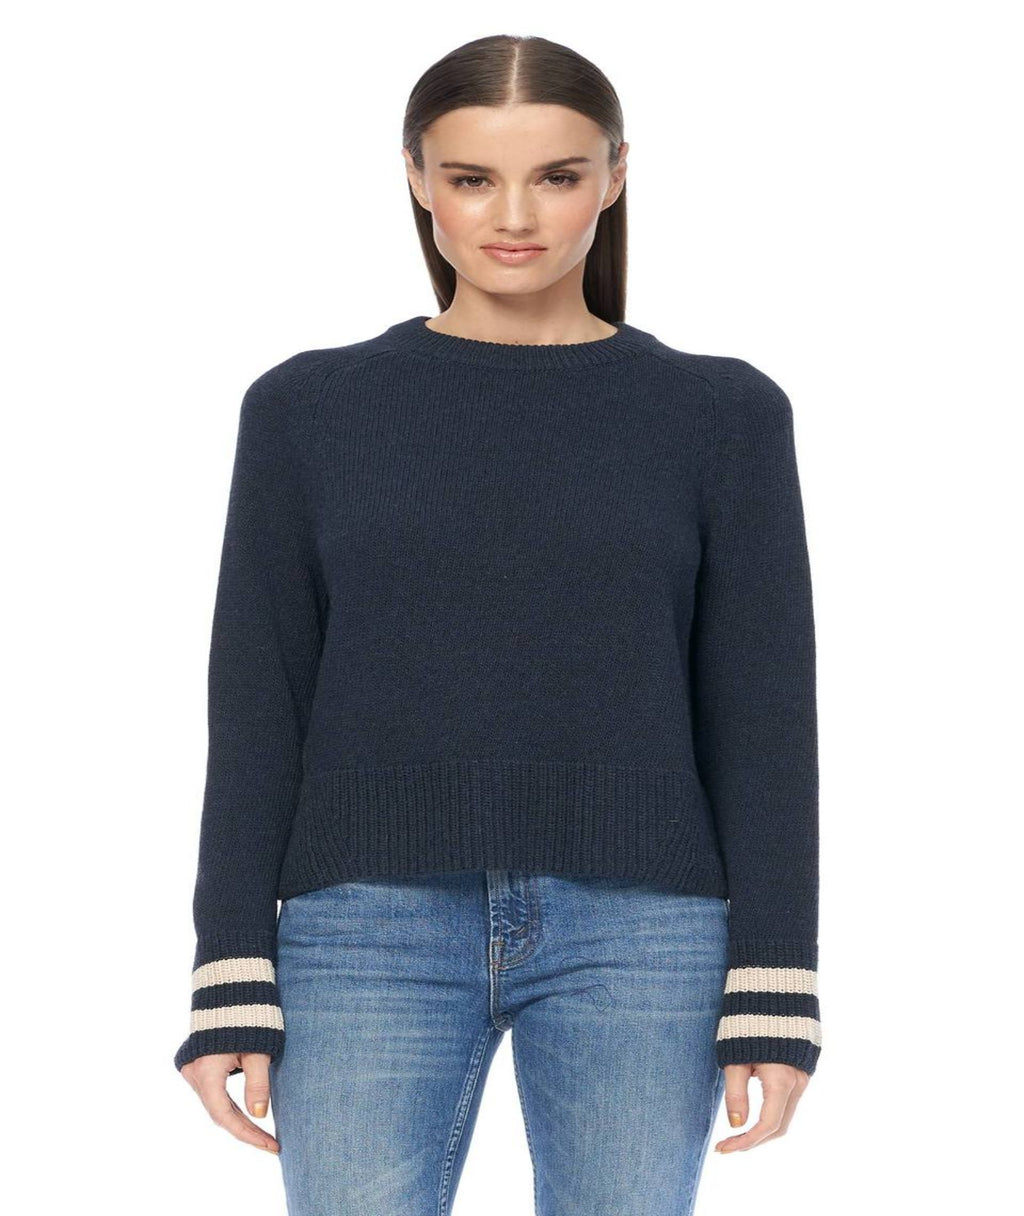 360 Cashmere Midnight Tallulah Pullover Sweater With Khaki Sleeve Stripe